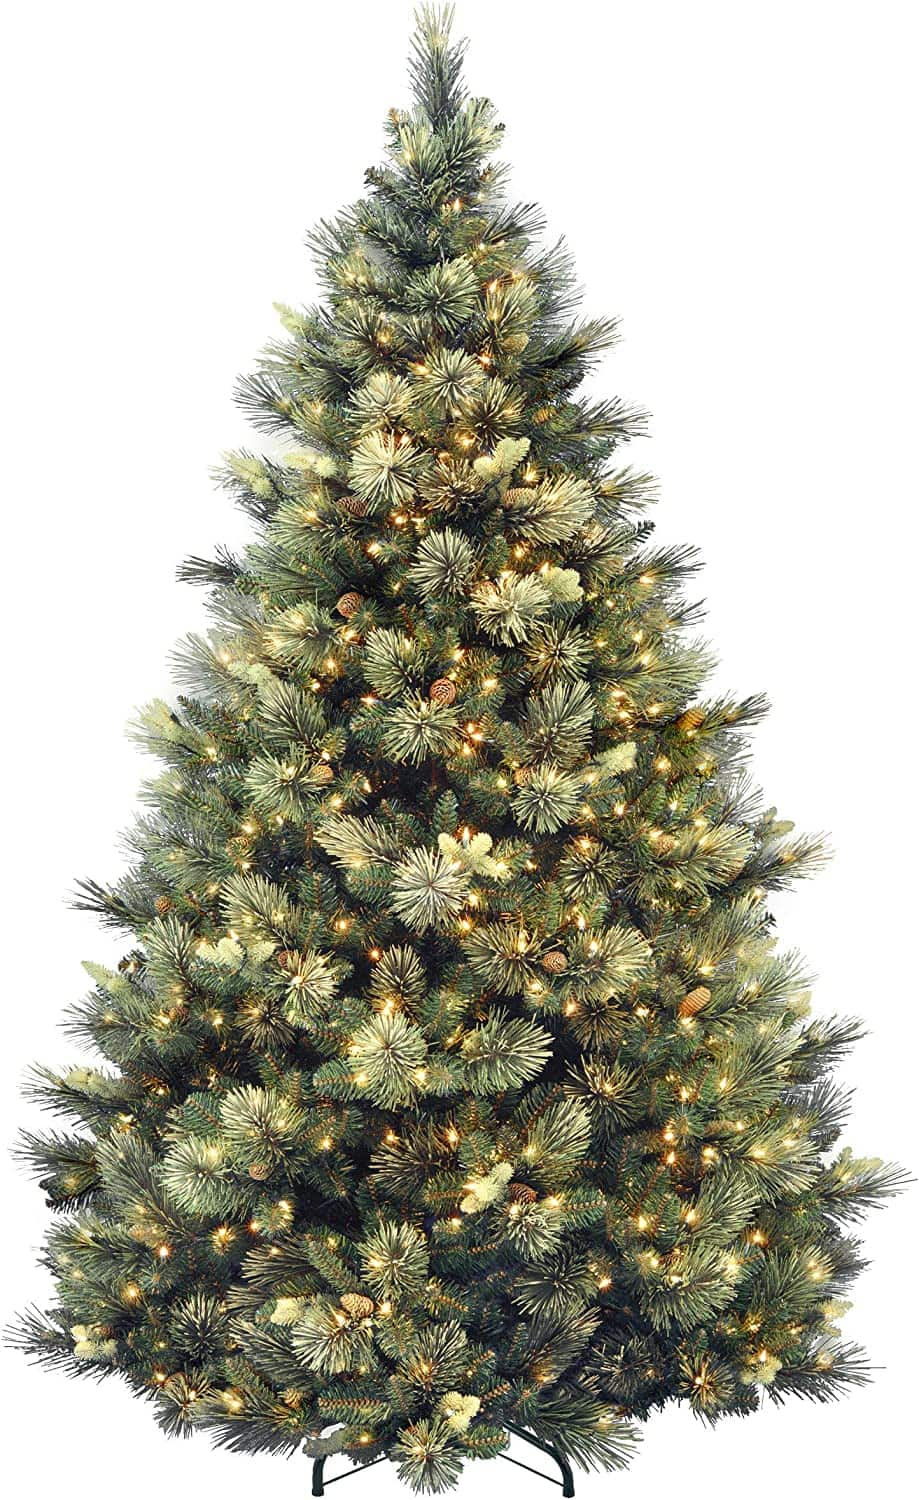 National Tree Company Artificial Tree With Pre-strung White Lights